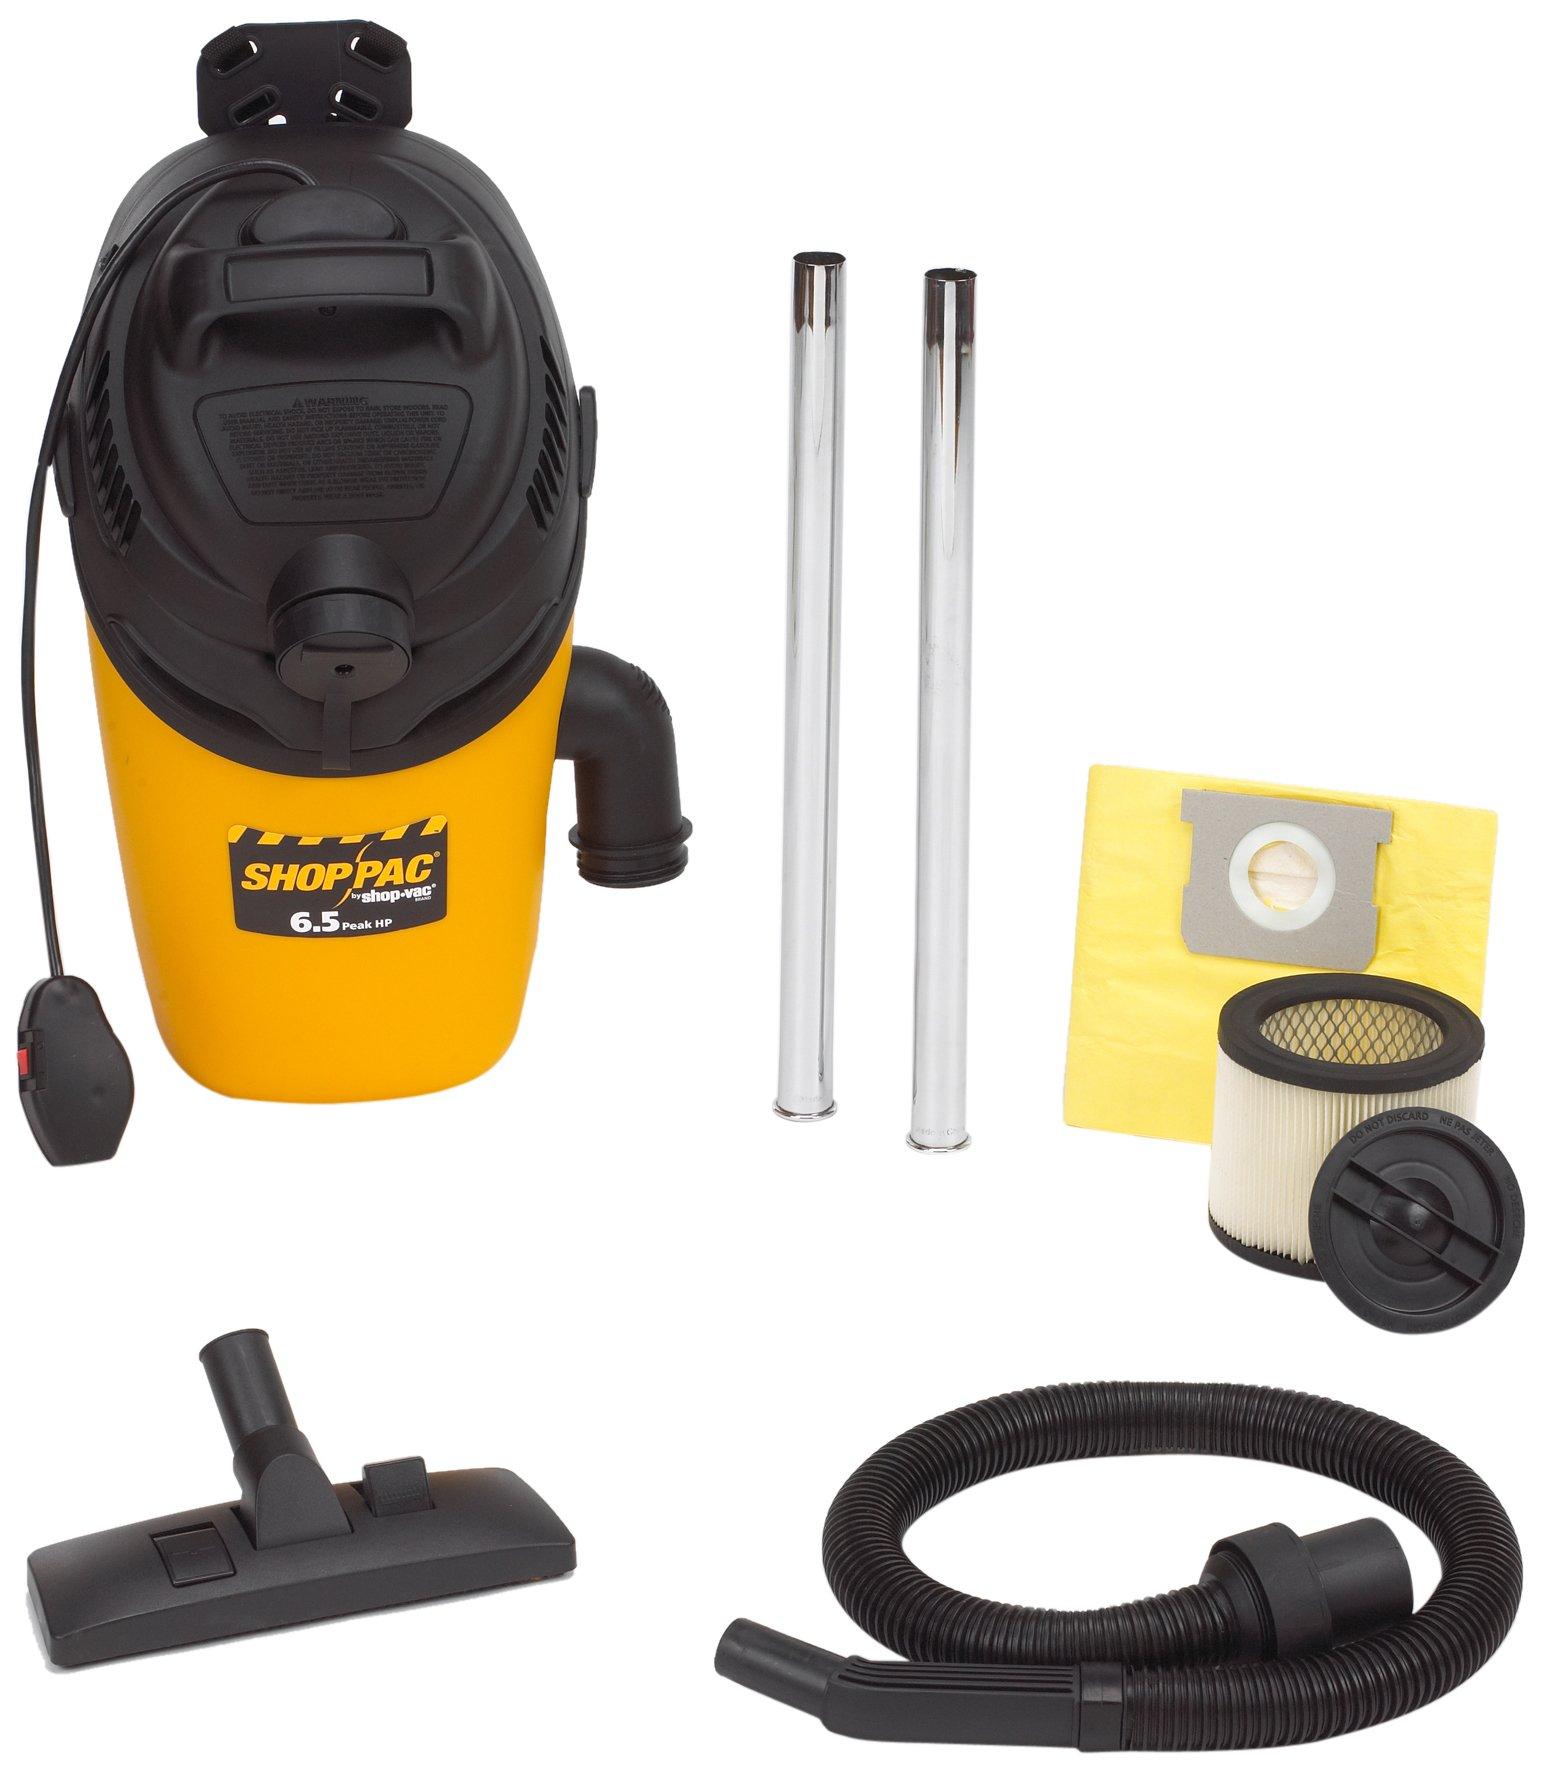 Shop-Vac 2860010 6.5-Peak HP Industrial BackPack Vacuum